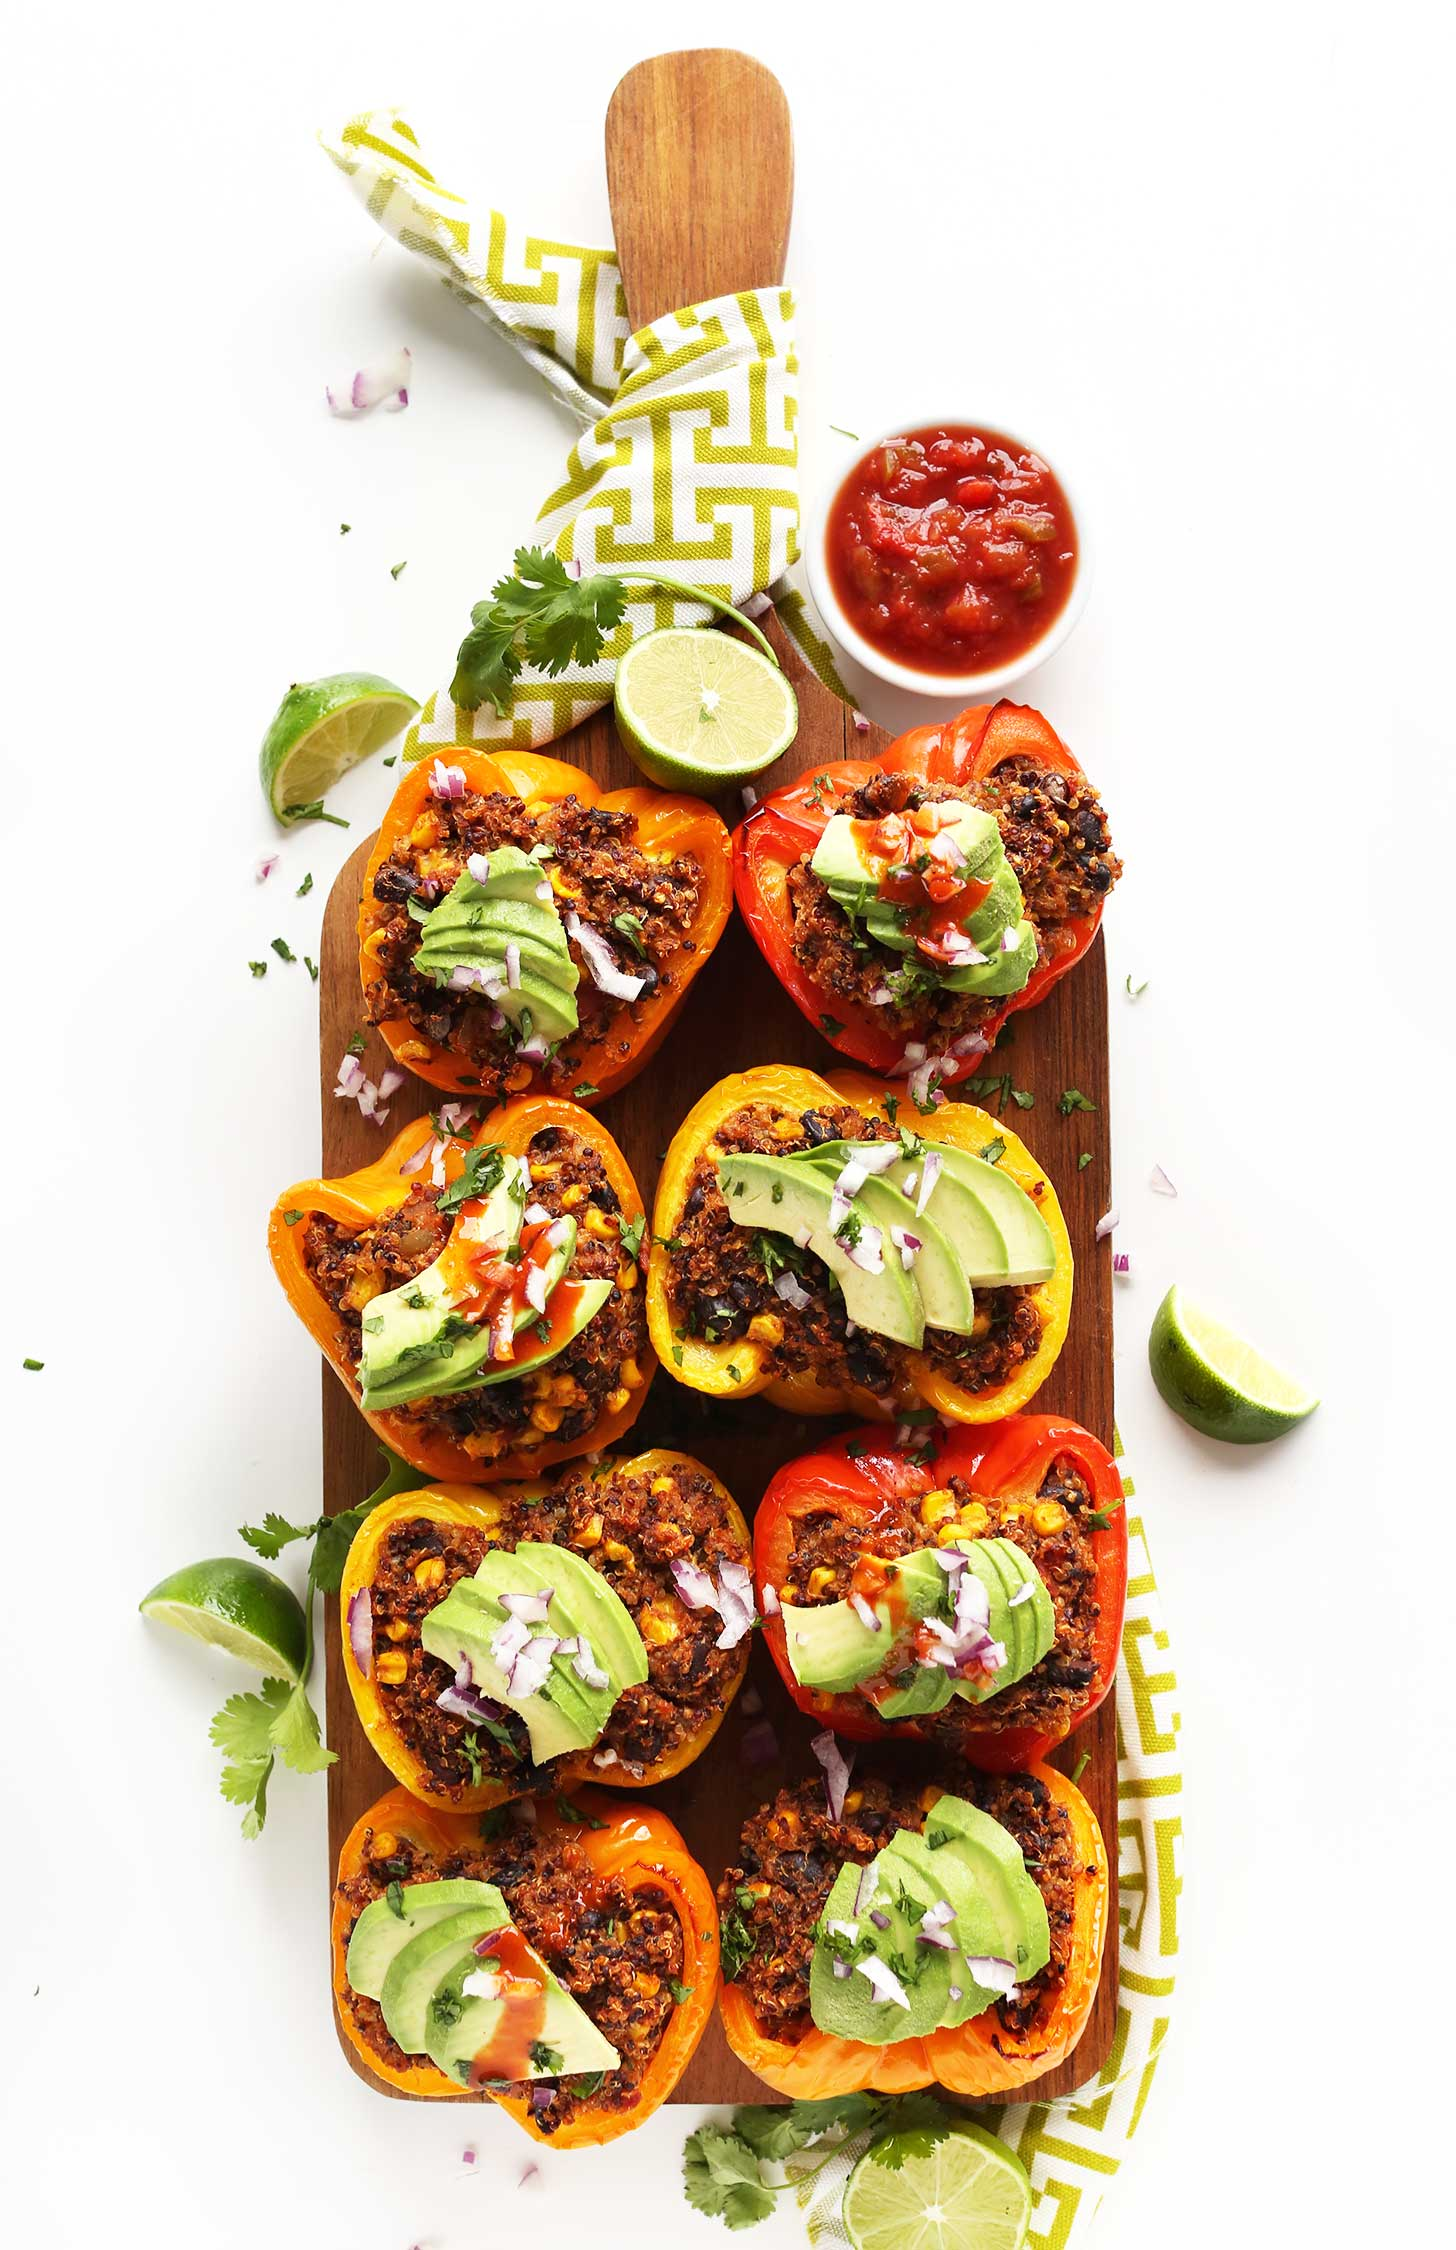 Wood platter filled with gluten-free vegan Spanish Quinoa Stuffed Peppers